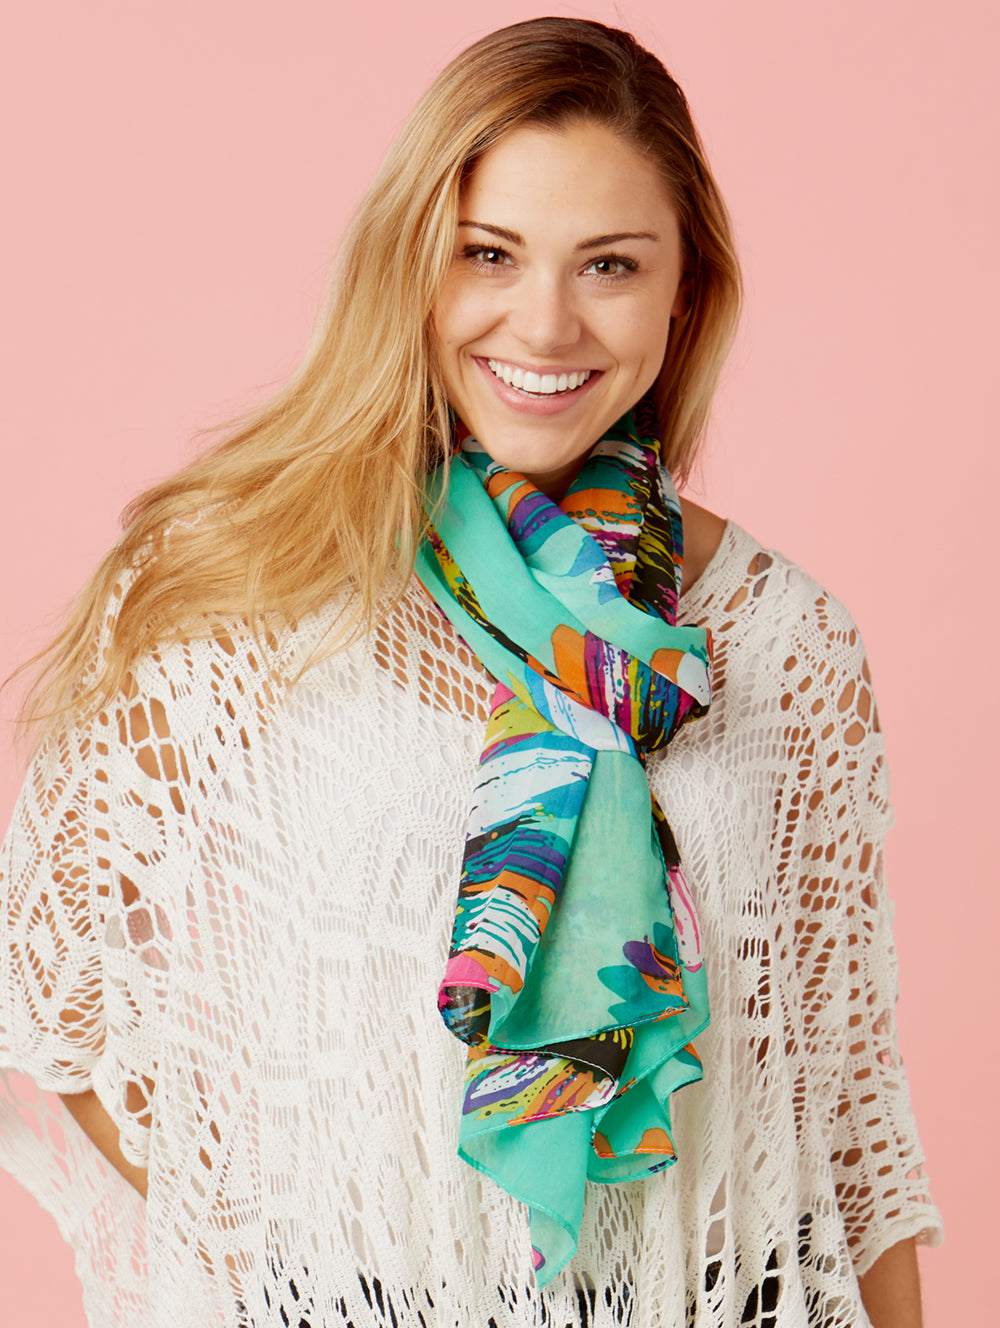 wholesale scarves for gift shops